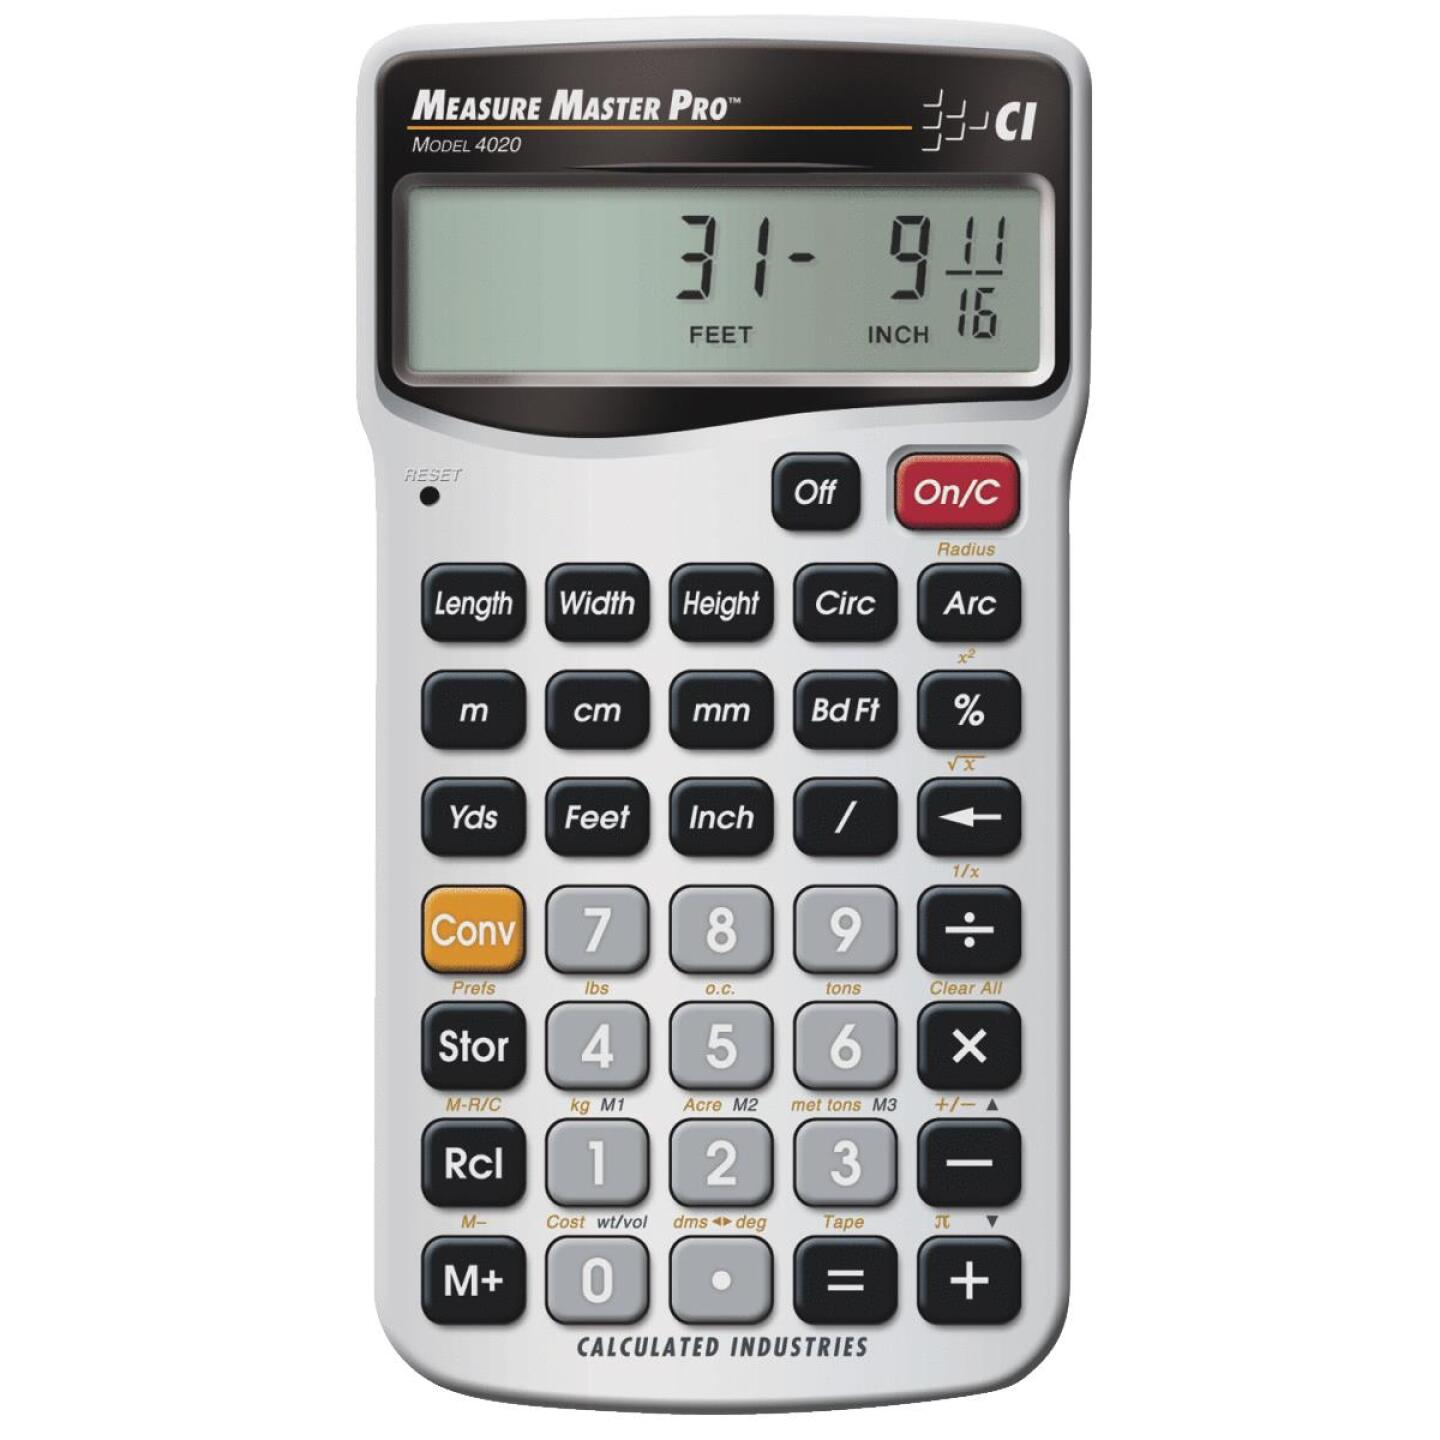 Calculated Industries Measure Master Pro Project Calculator Image 1